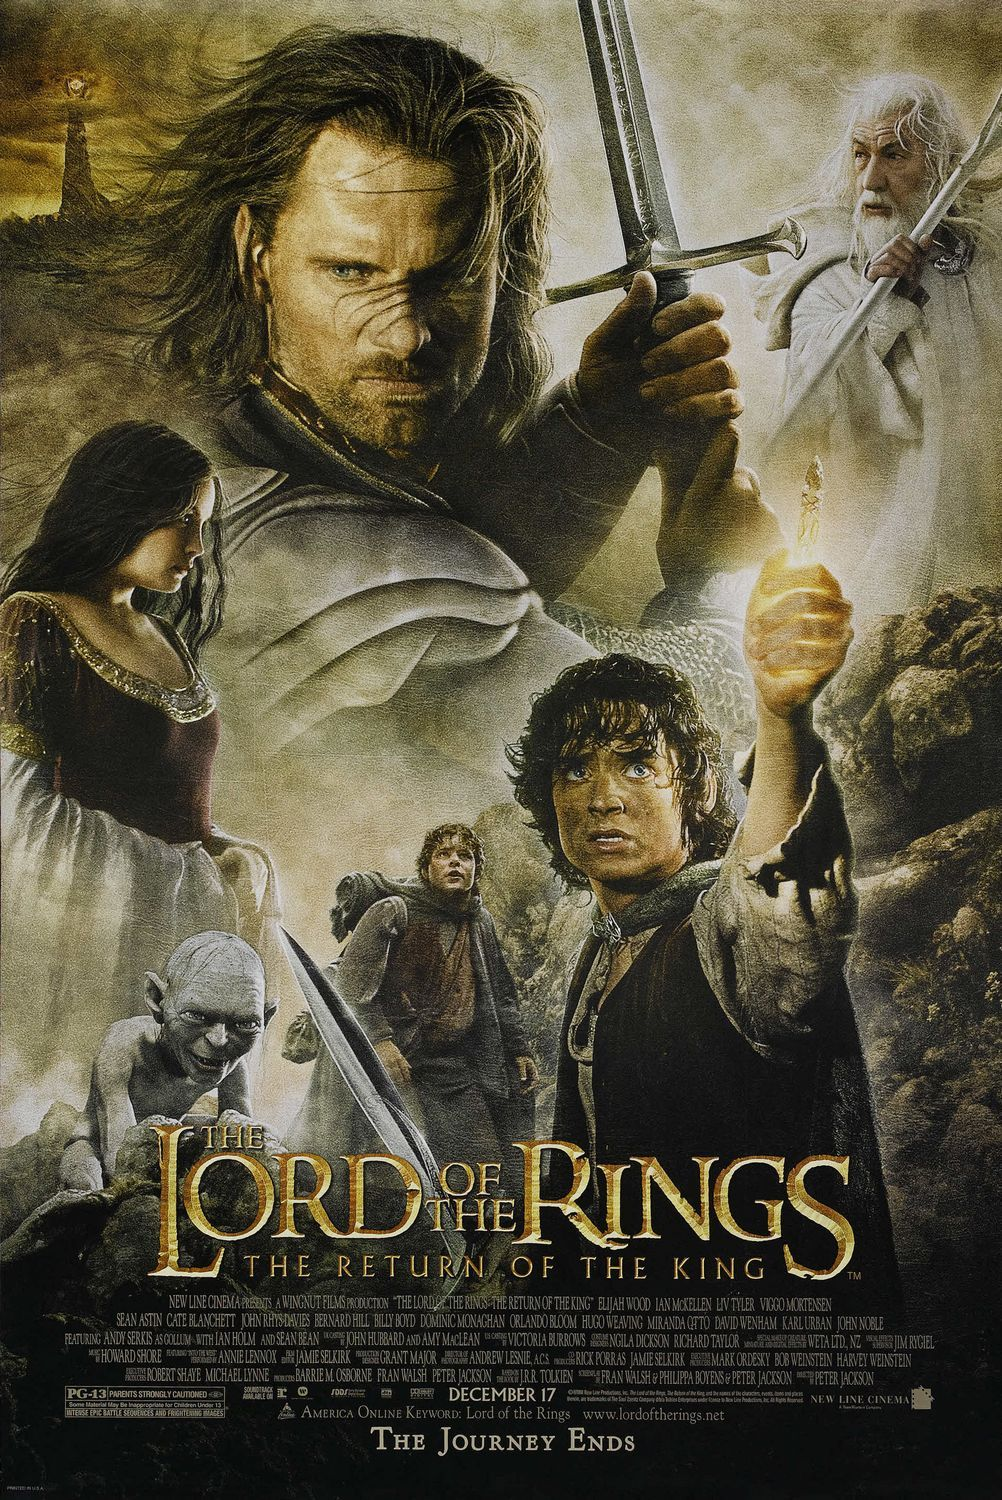 The Lord Of The Rings 2 The Lord Of The Rings Extended Edition Bluray Review  Collider